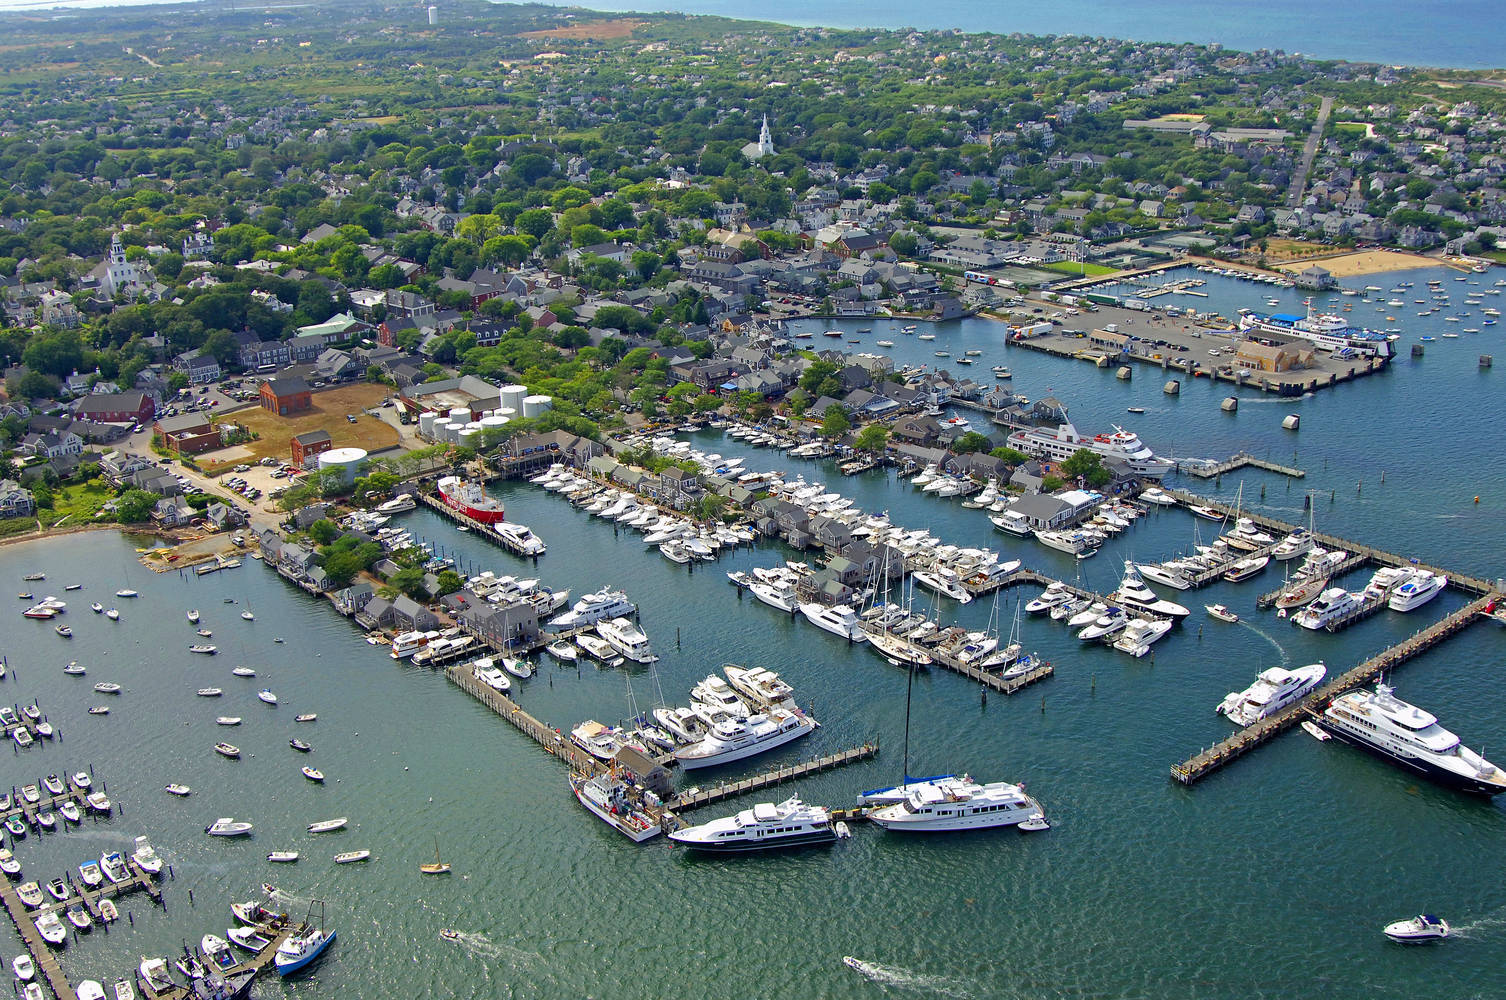 Nantucket Boat Basin - present day